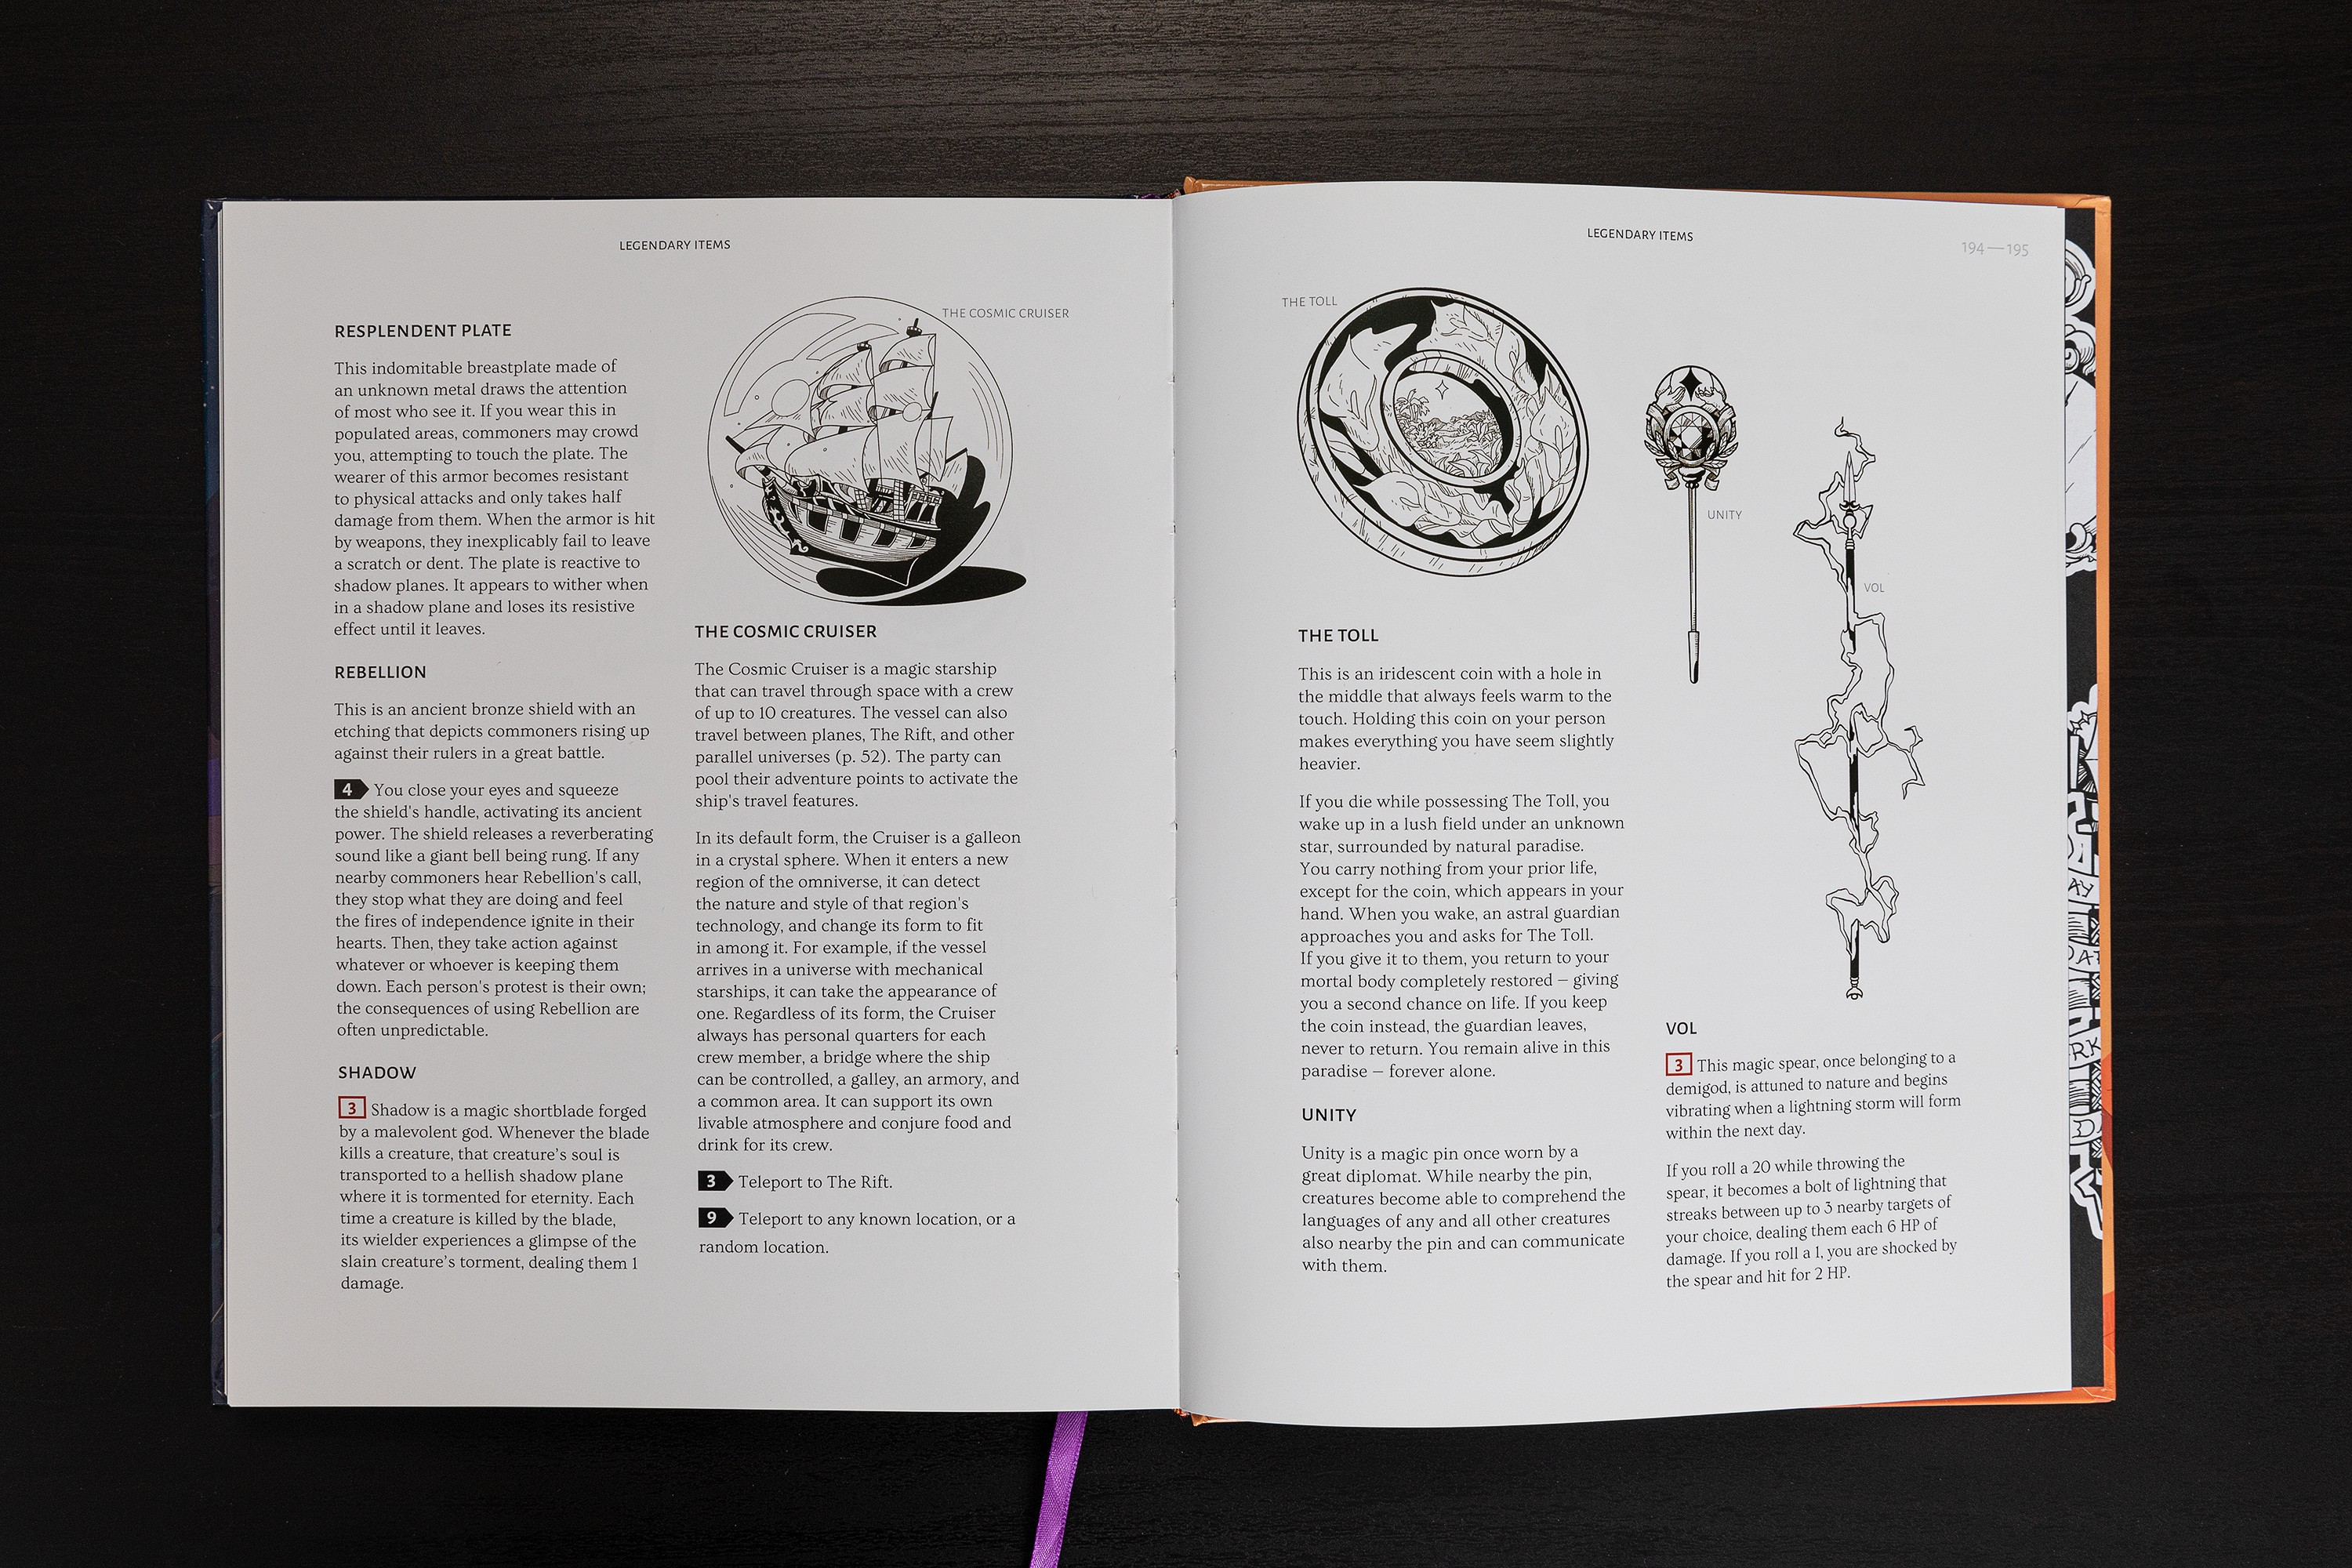 A two-page spread in the Quest Game Book with names and descriptions for Legendary items.